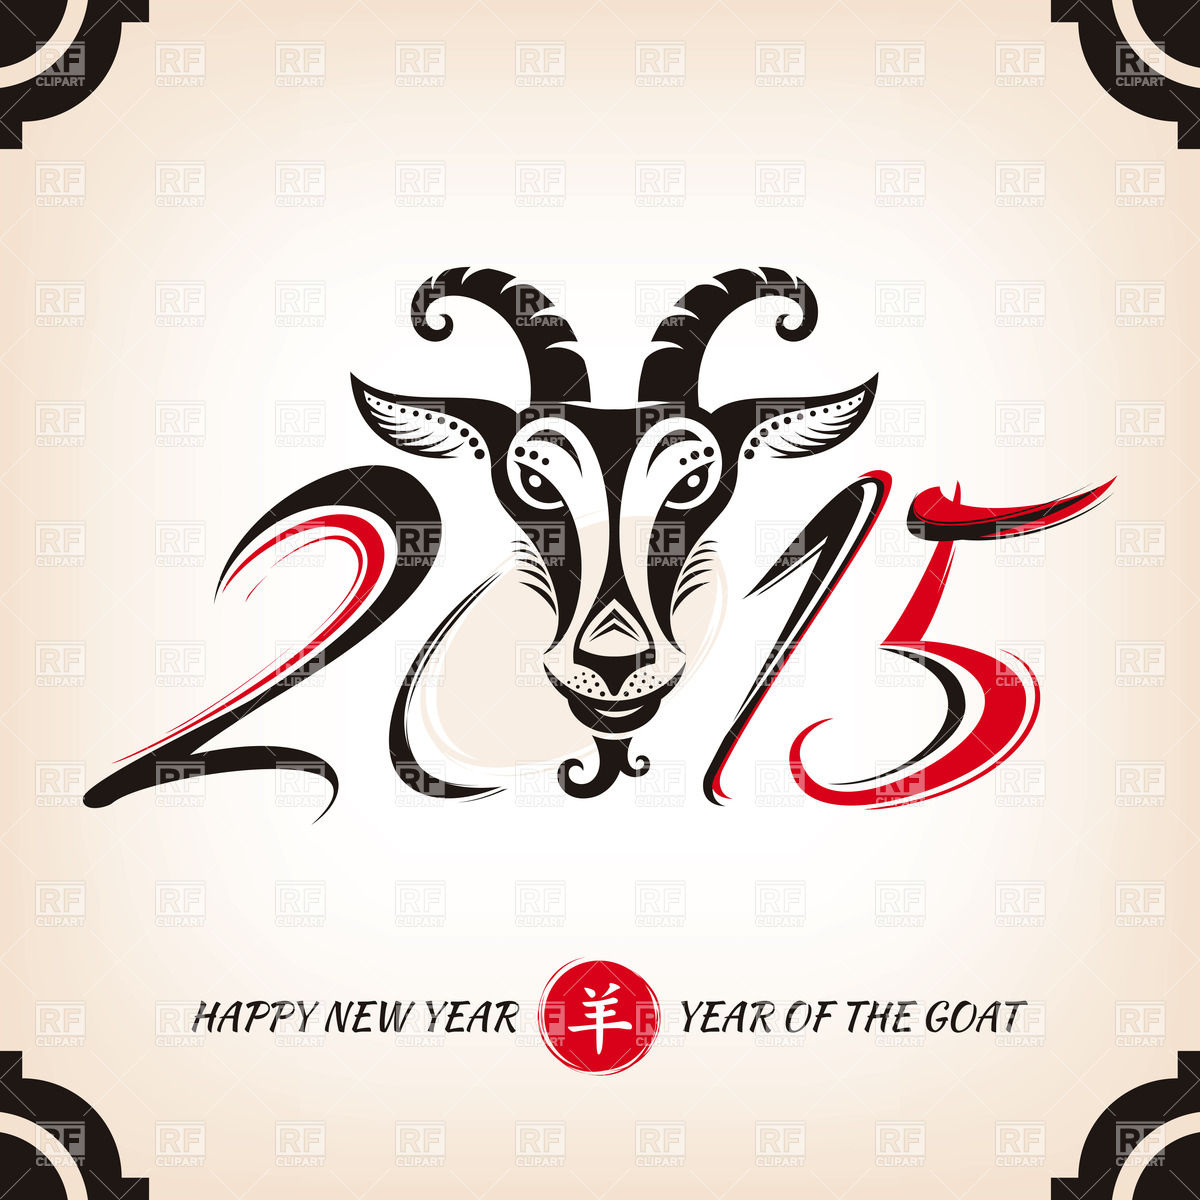 Chinese New 2015 Year Greeting Card With Goat 38352 Download Royalty